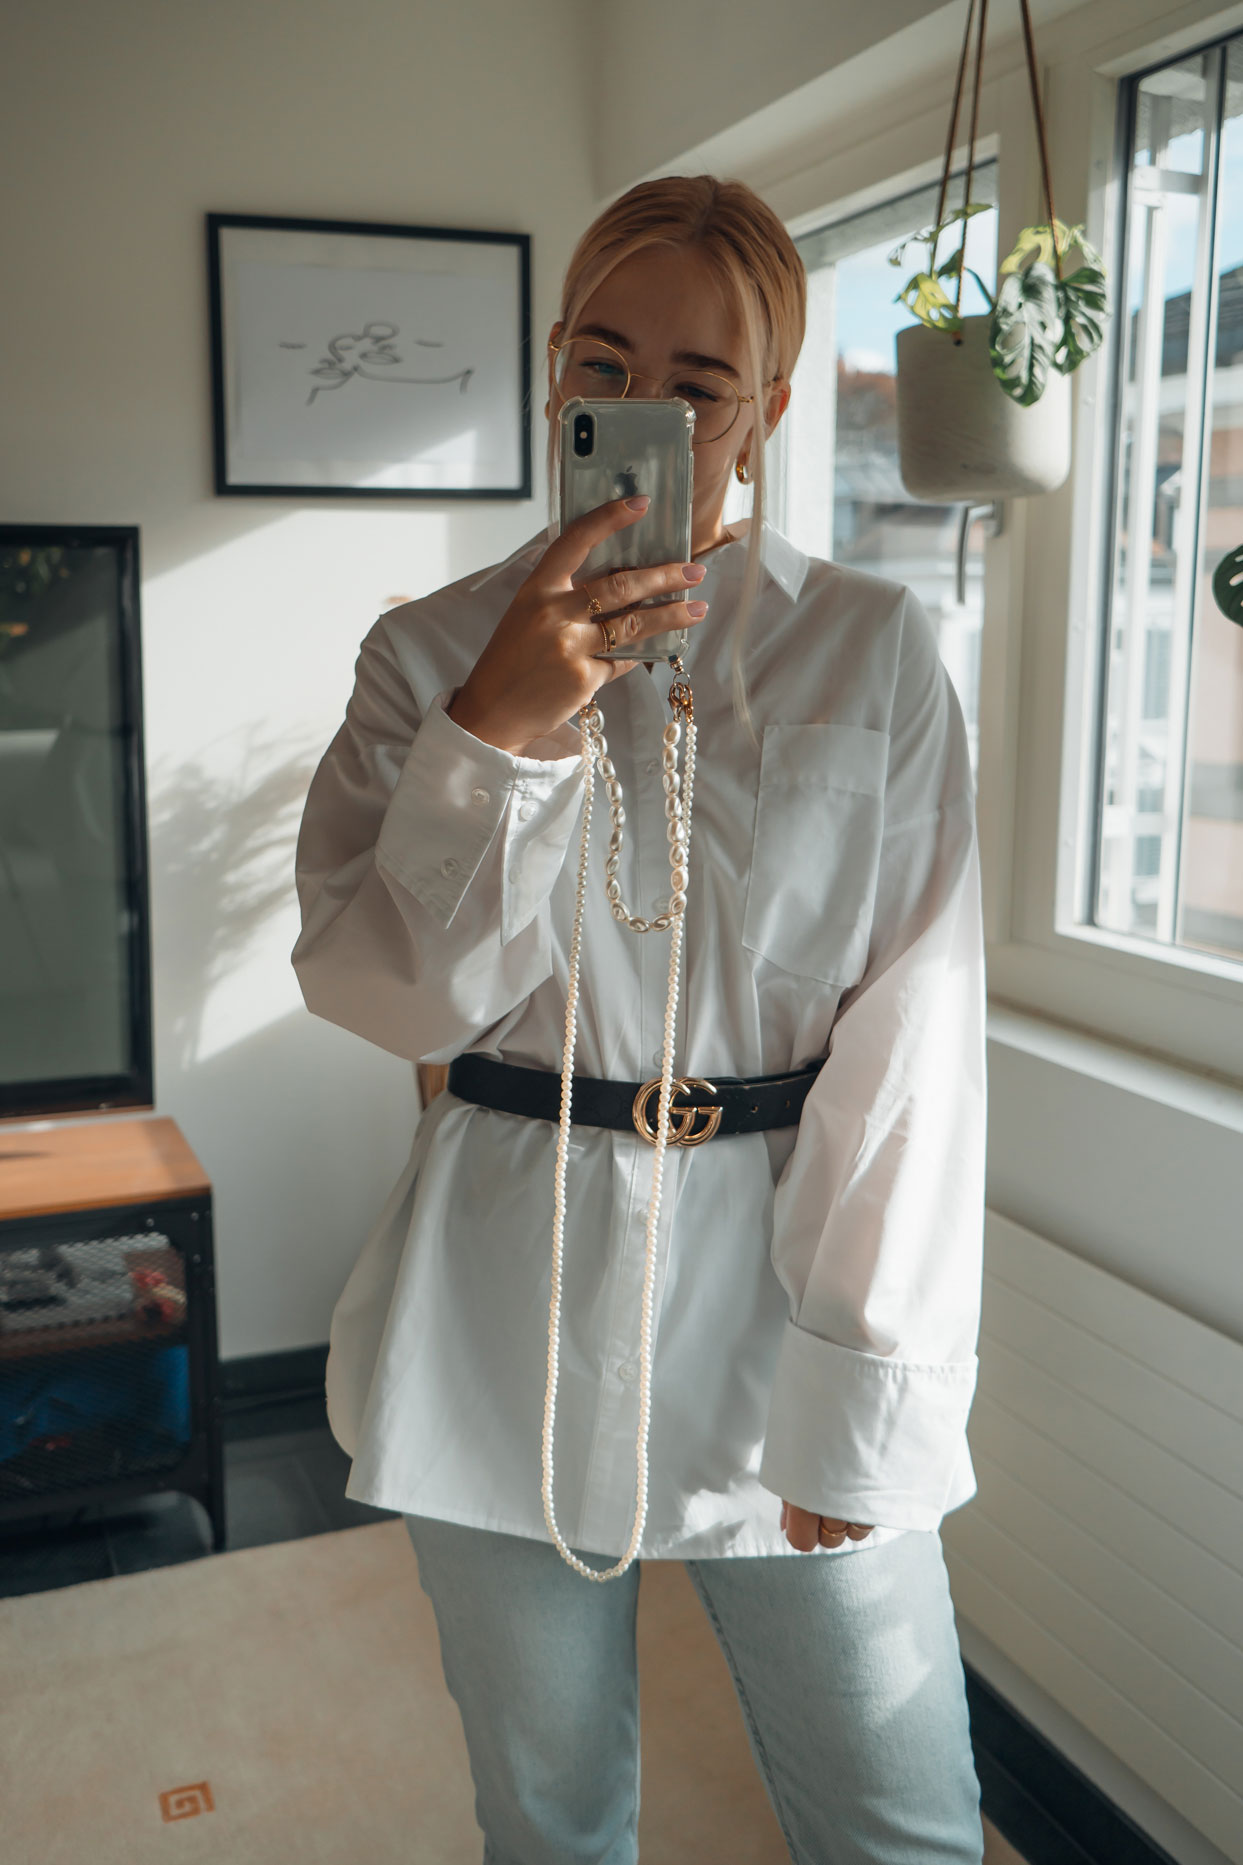 How to style oversized shirts